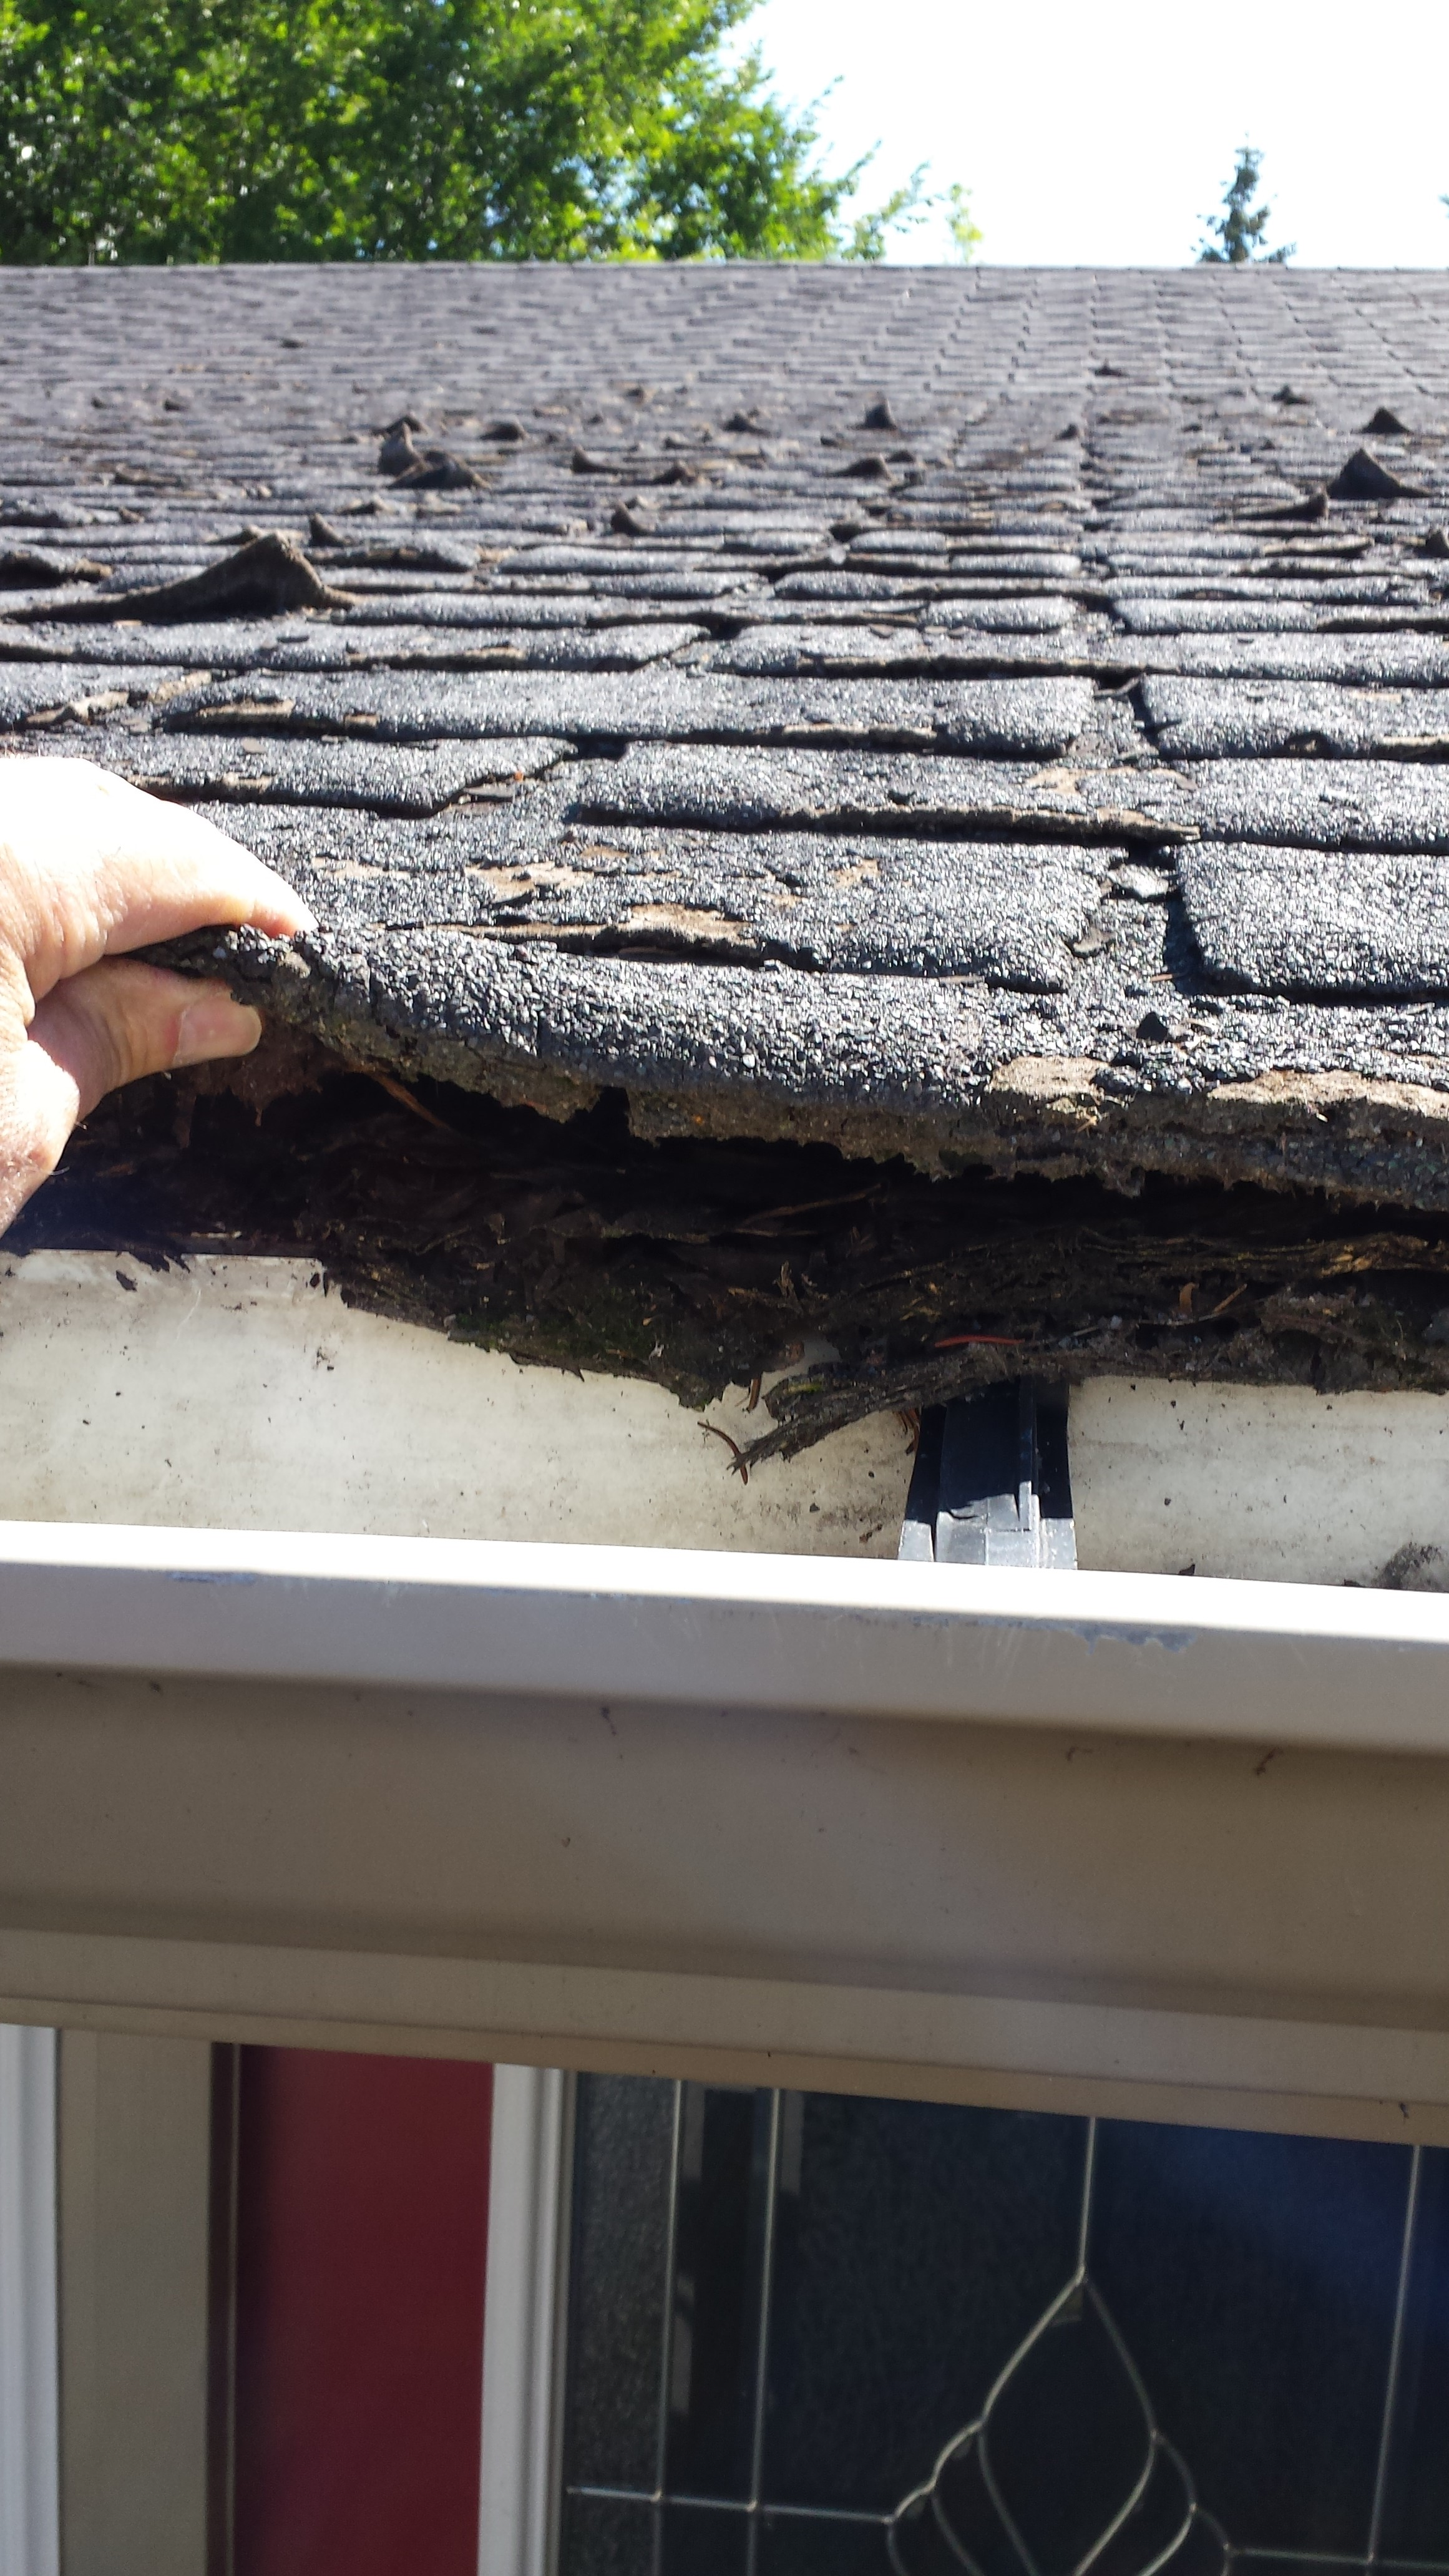 the absence of drip flashing can lead to water penetration and damage to wood substrate